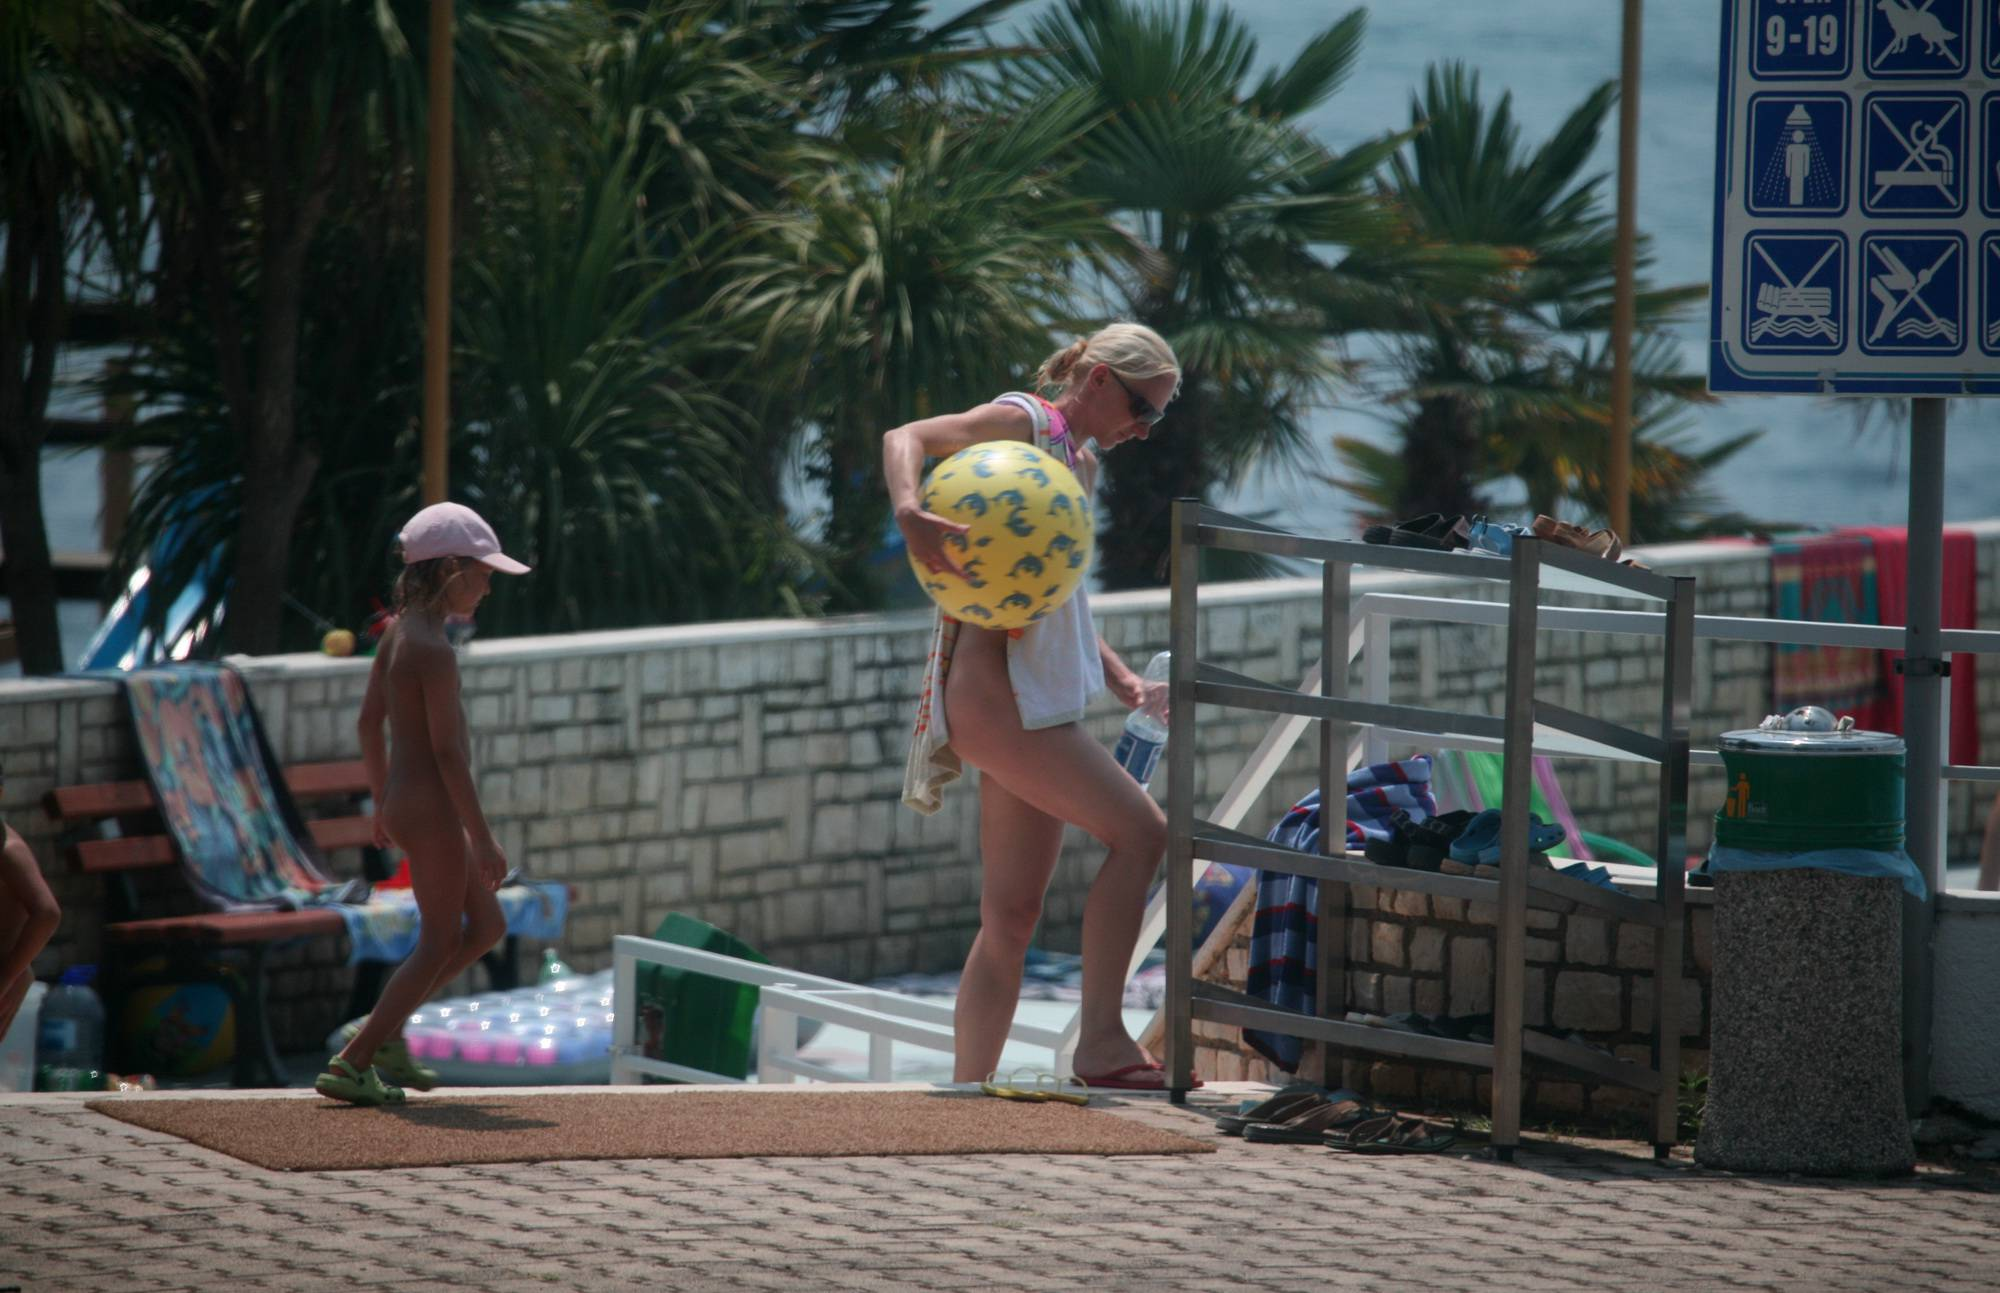 Pure Nudism Images-Beautiful Day for Pool - 2